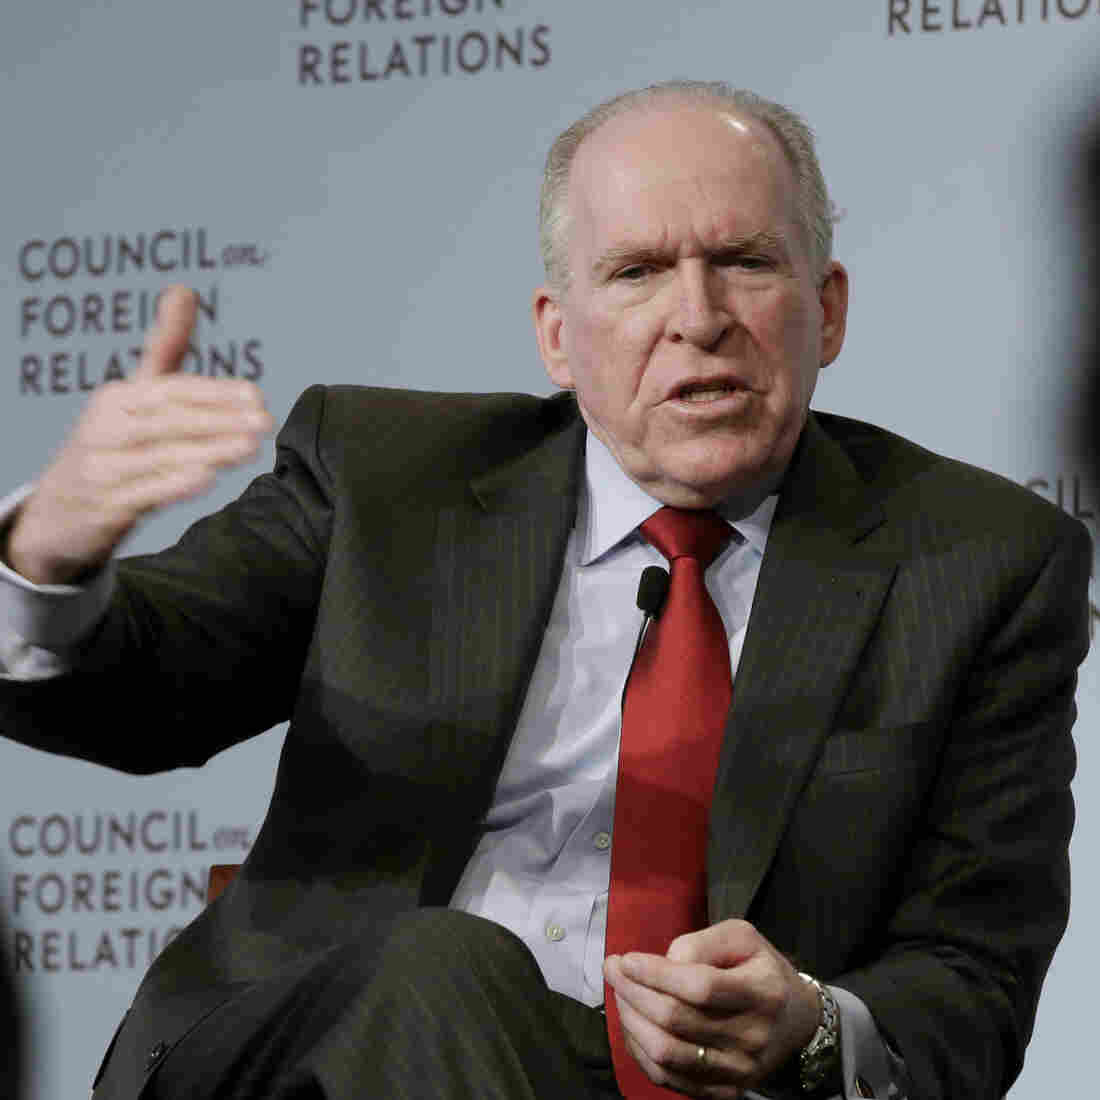 CIA Director John Brennan told an audience in New York on Friday that ISIS is facing internal divisions.